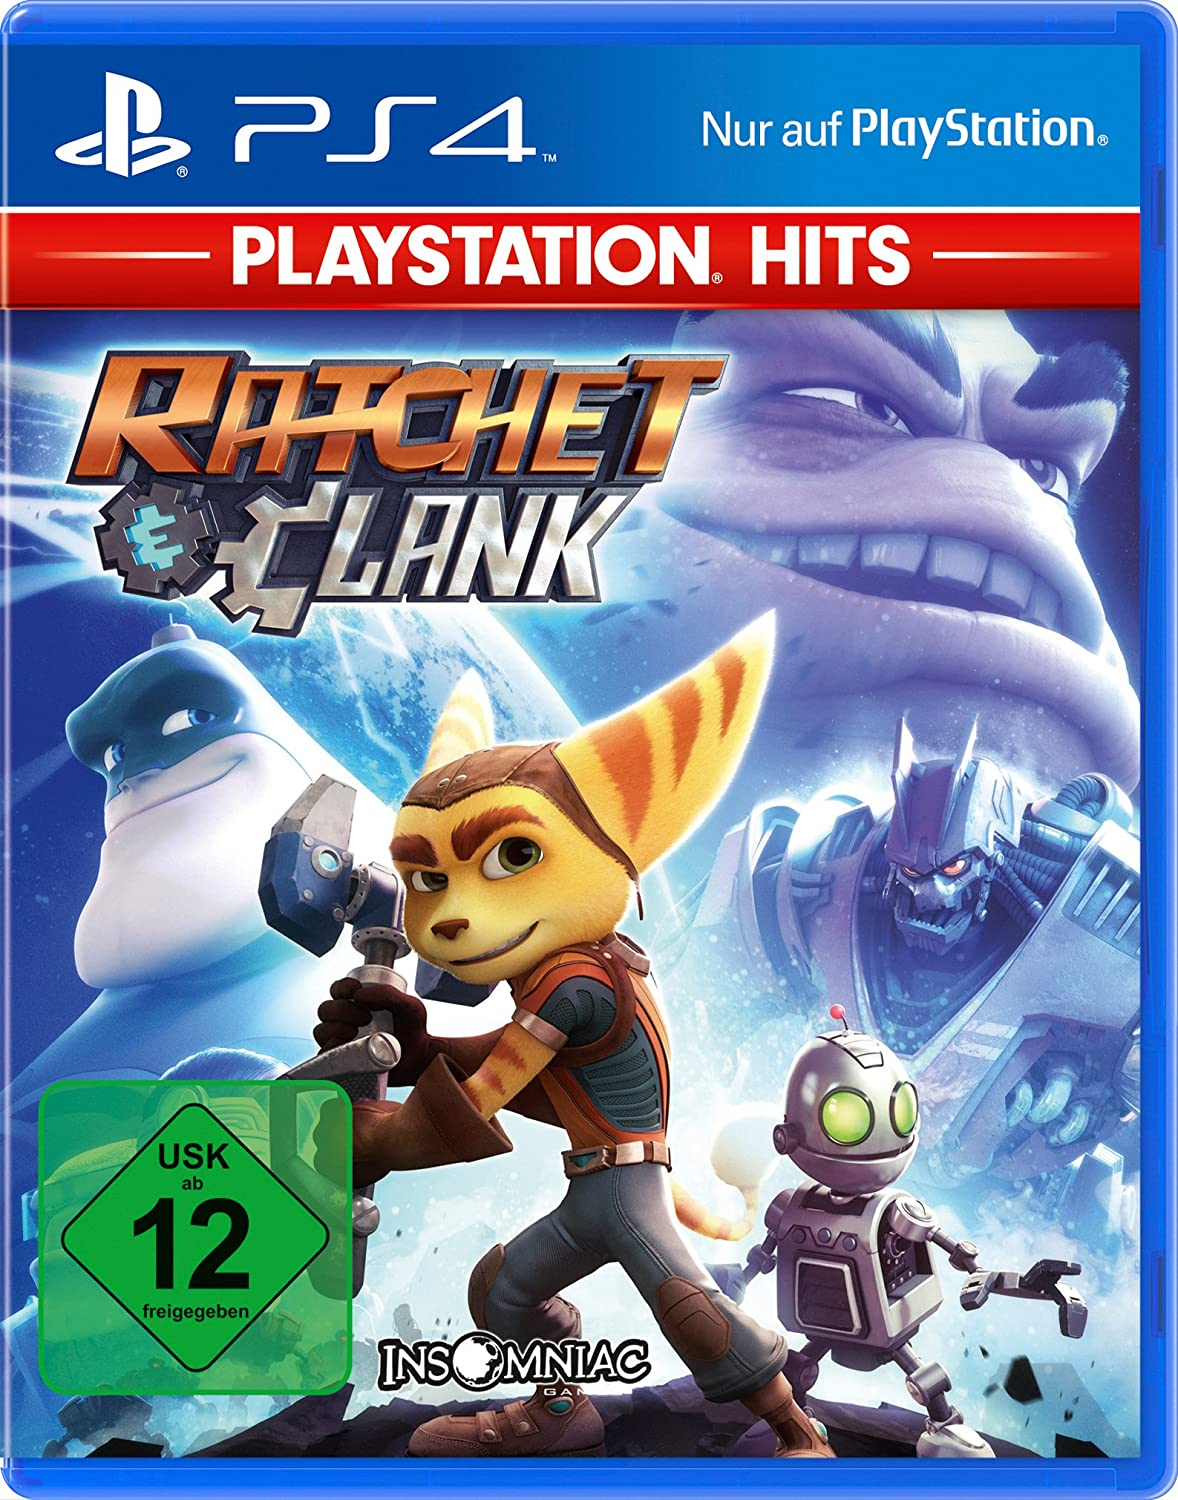 Ratchet and Clank GRATIS